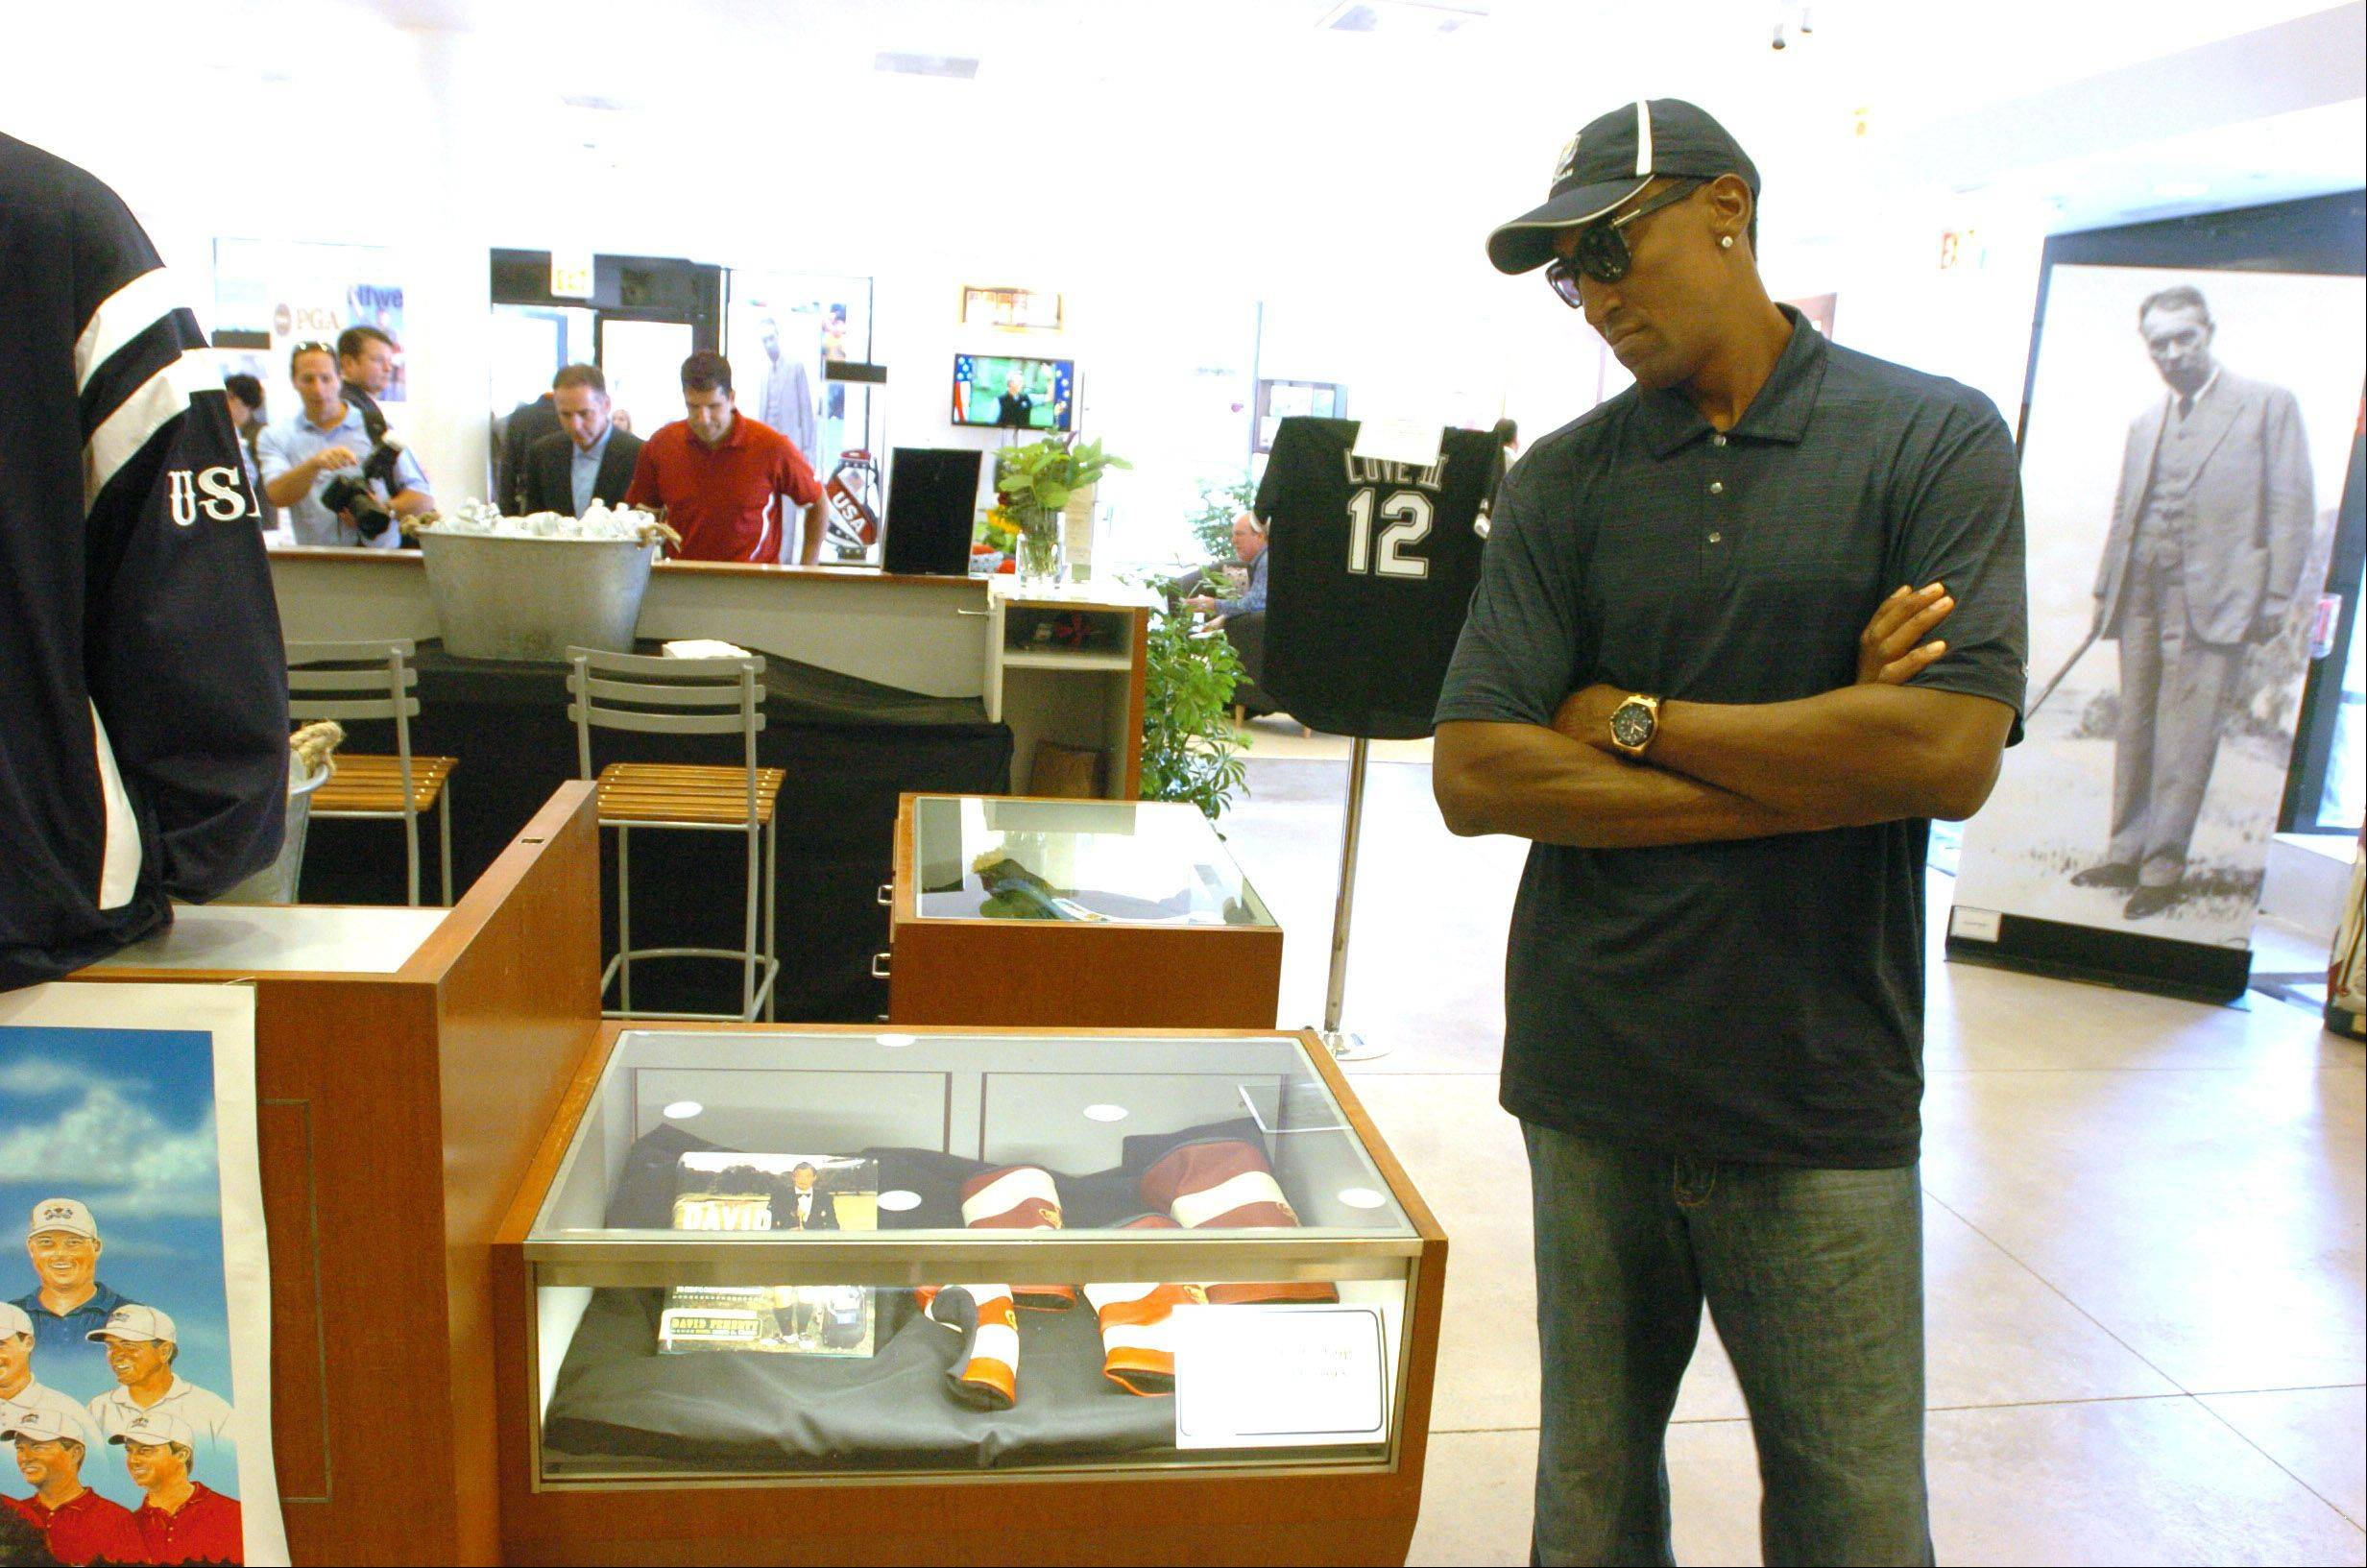 Scottie Pippen looks around the Ryder Cup Exhibit at Oakbrook Center.